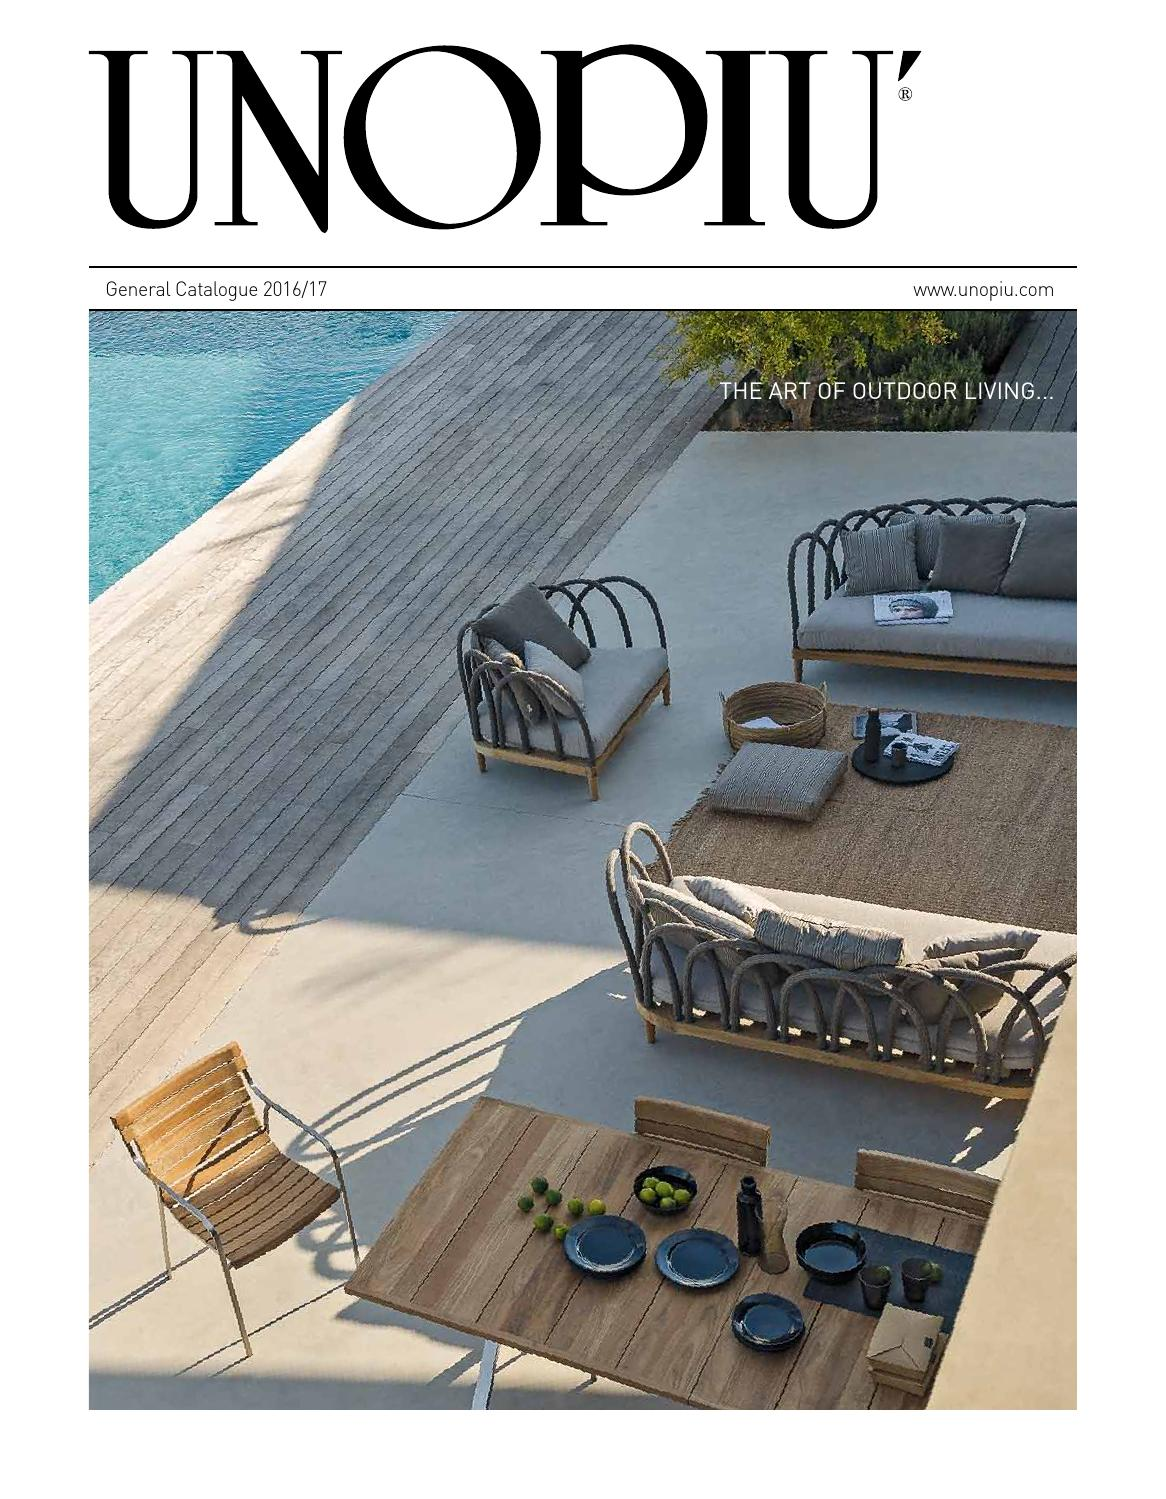 Unopi general catalogue 2016 by unopi spa issuu for Table exterieur unopiu